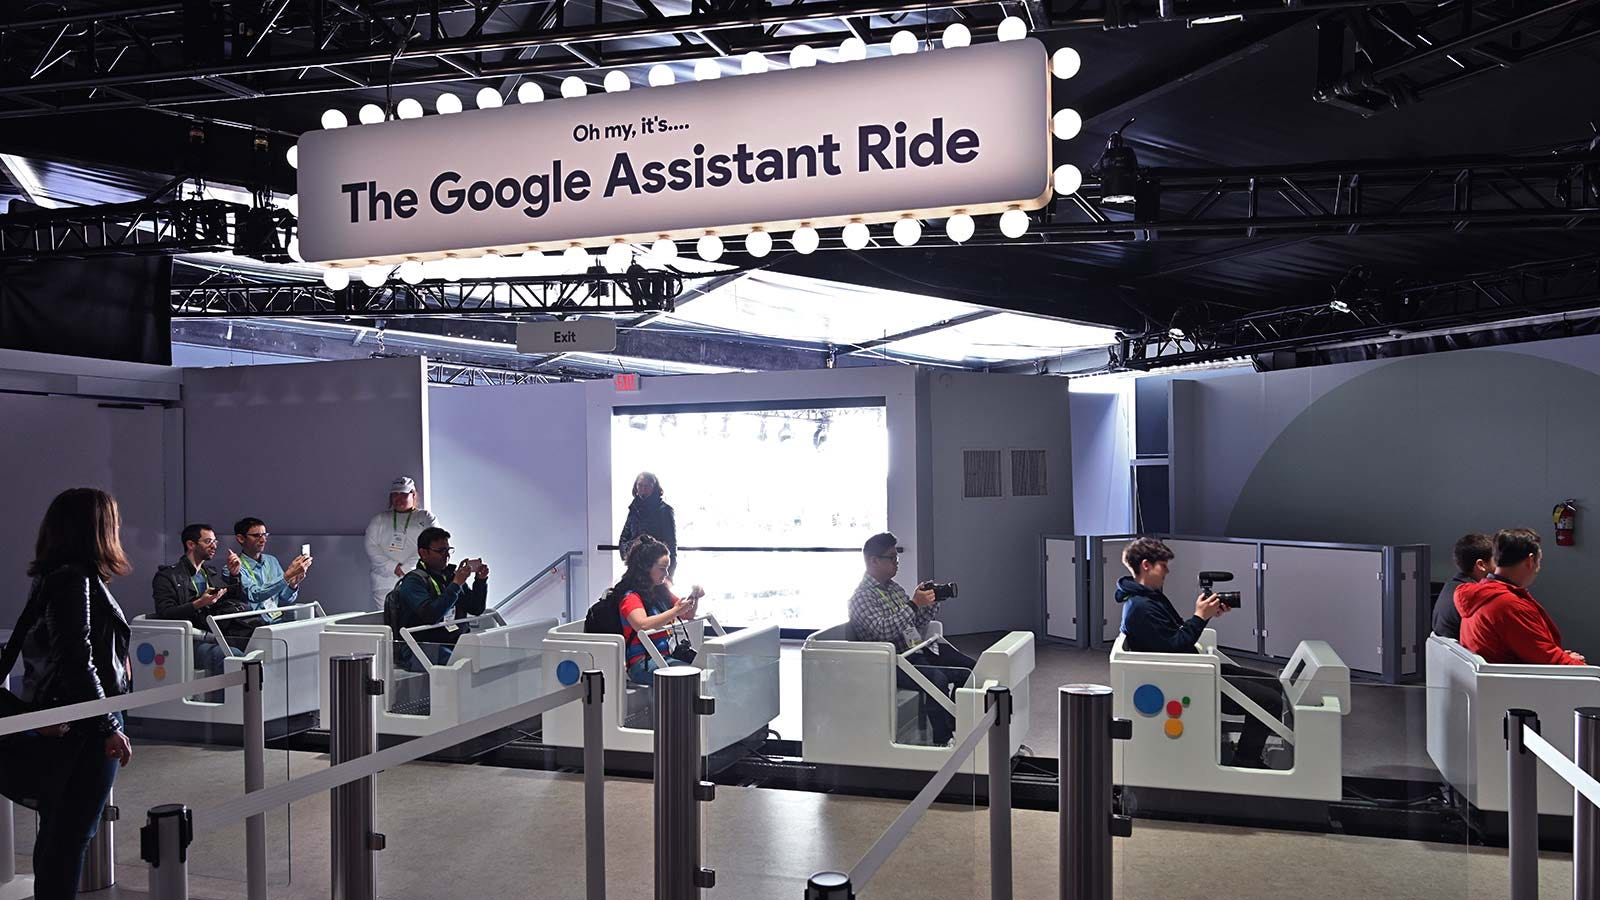 QnA VBage Google Is Blitzing CES With a Literal Rollercoaster of Google Assistant Tech